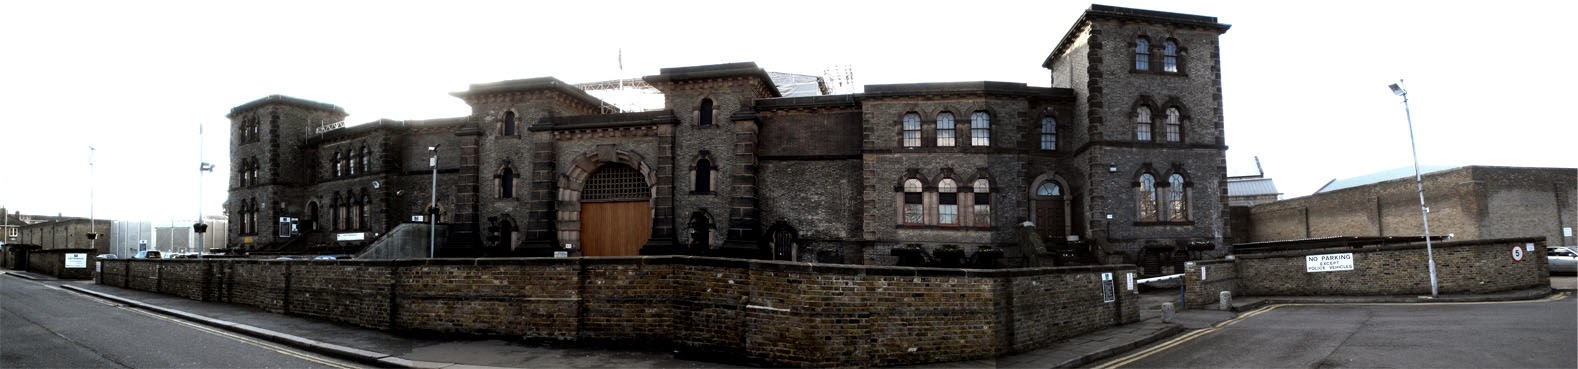 Panoramic view of Wandsworth Prison